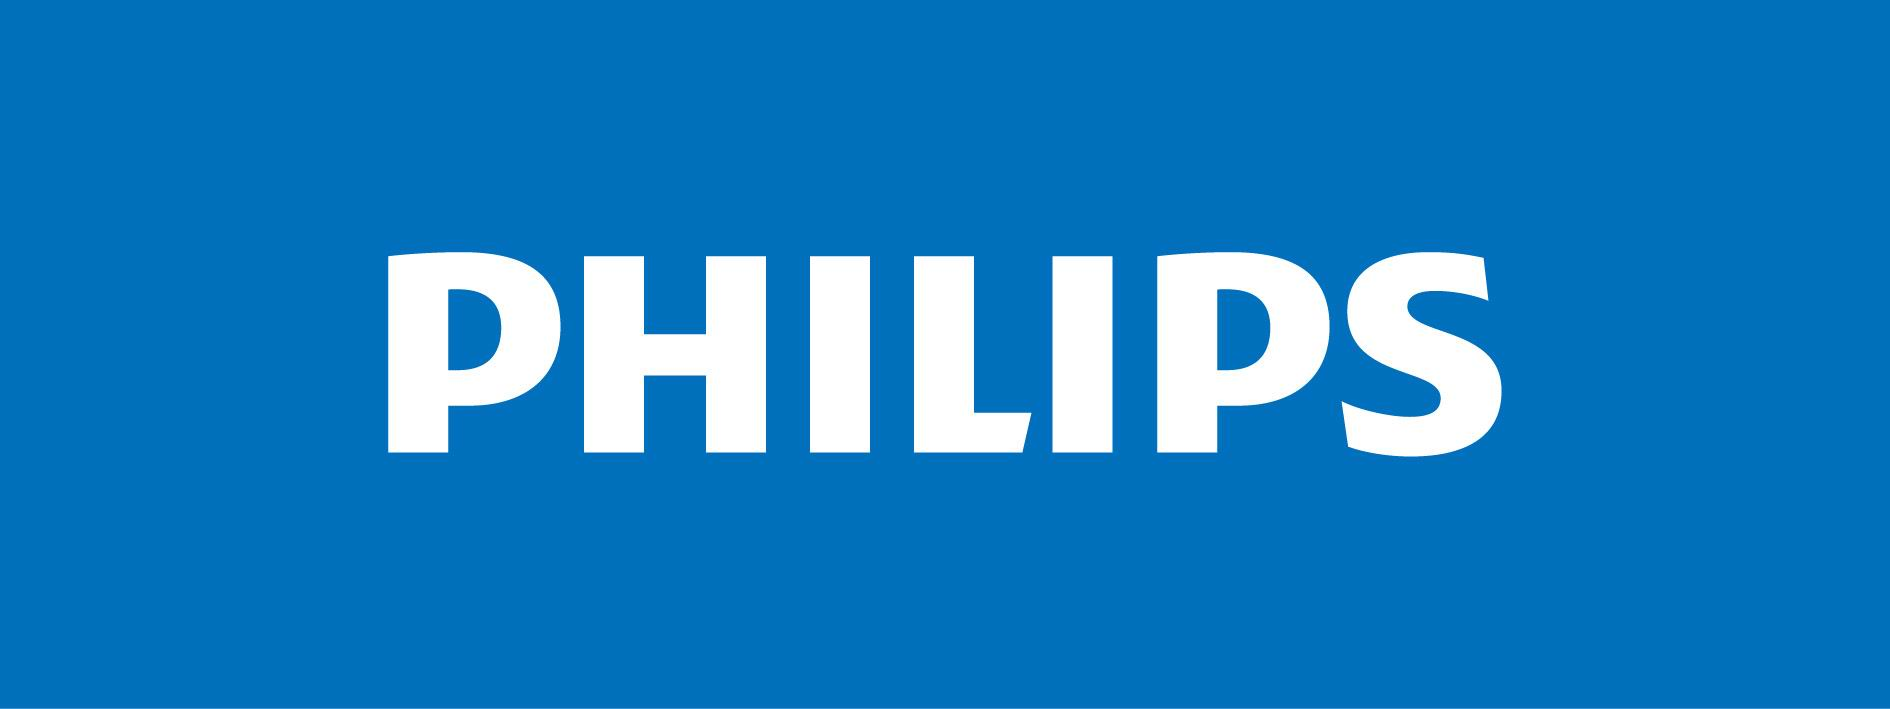 phillips_logo